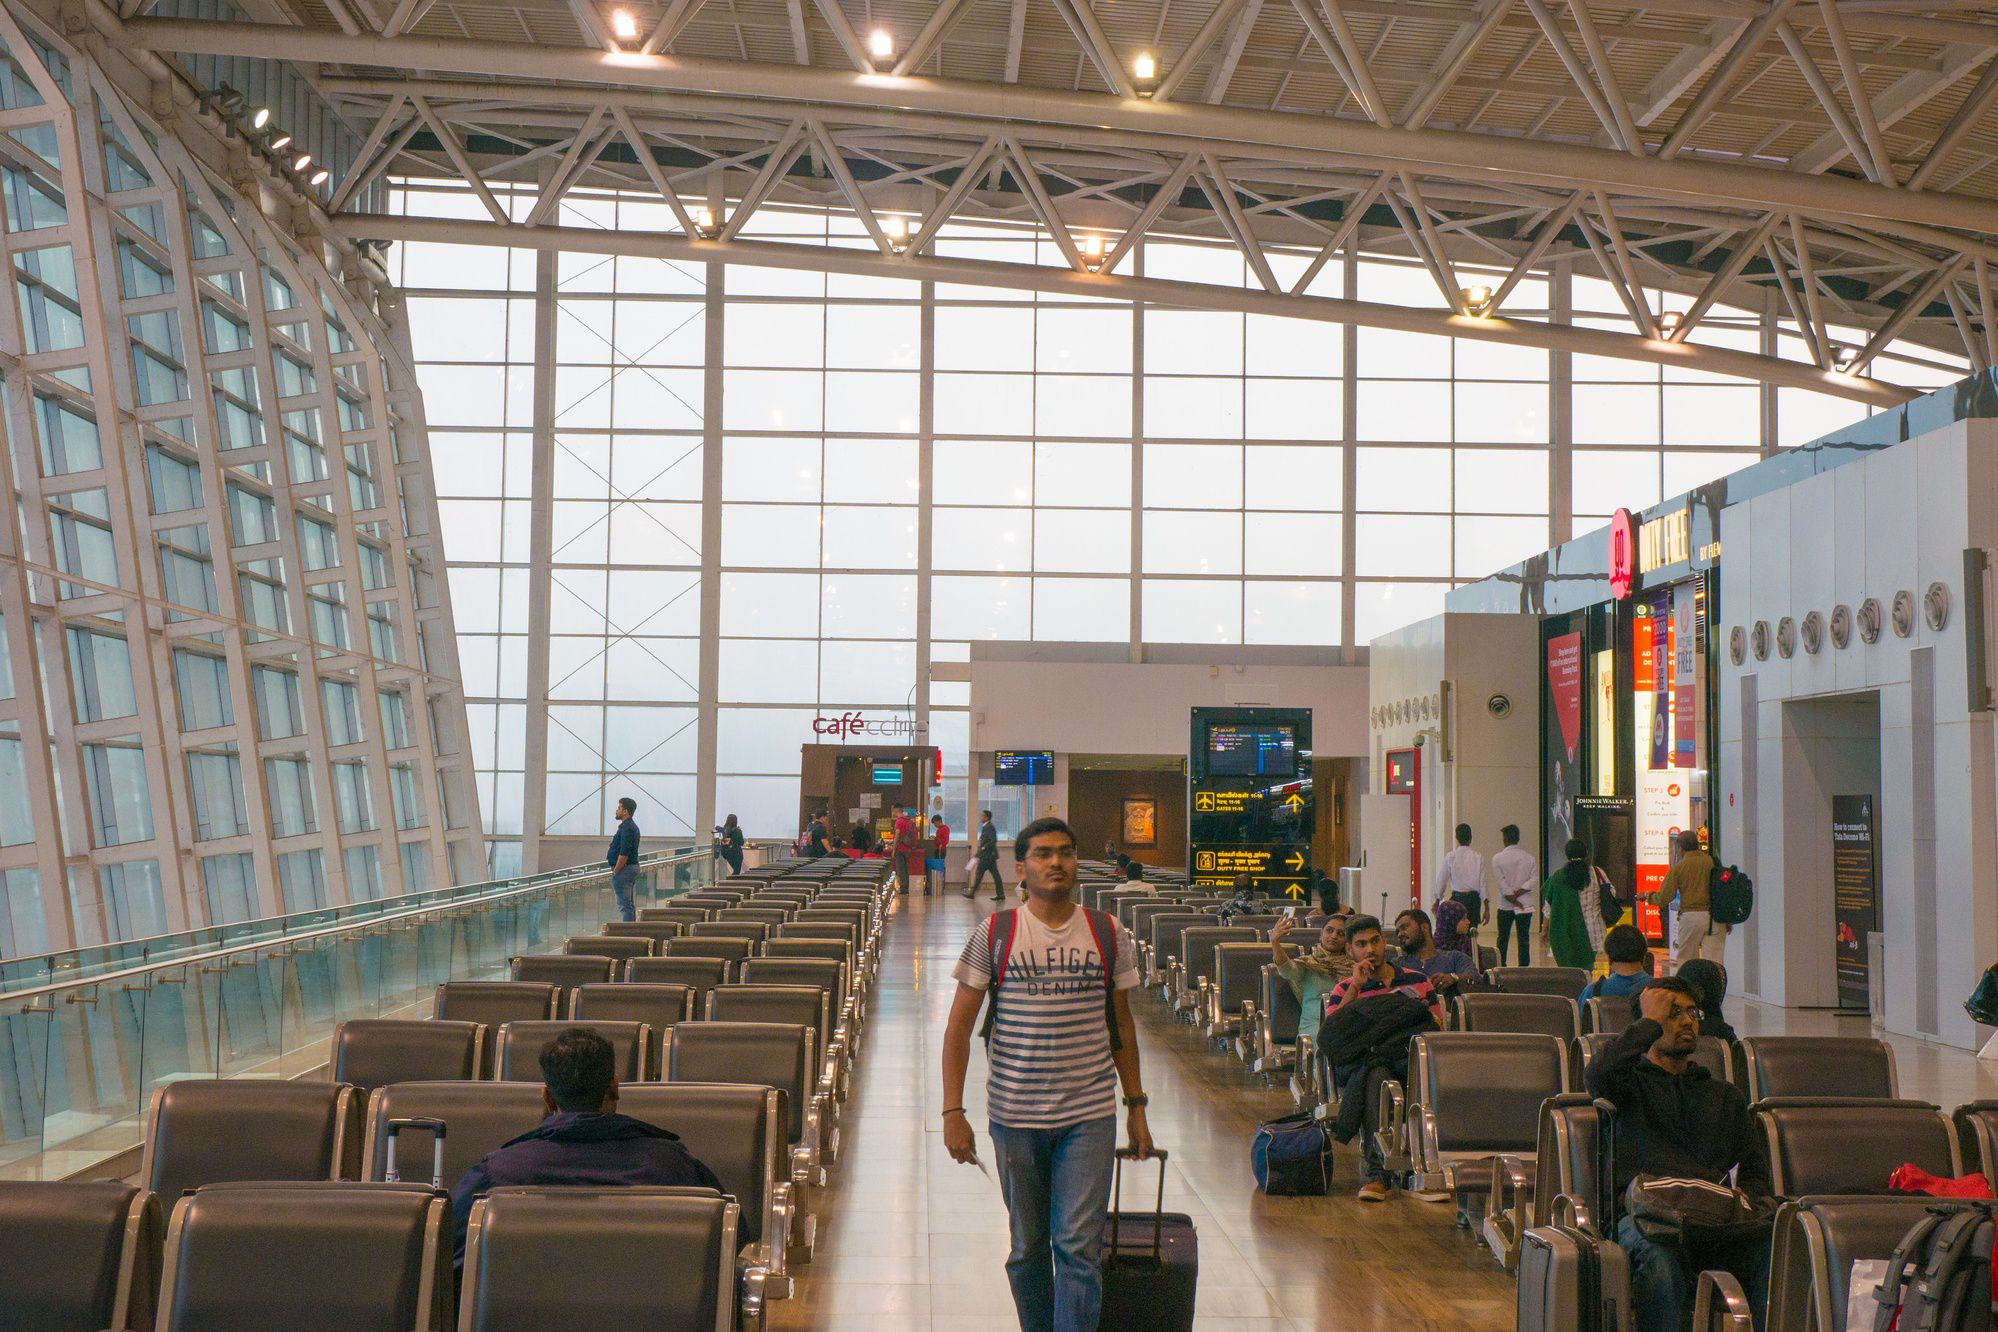 Best Hotels Near Chennai Airport: Where Should You Stay?